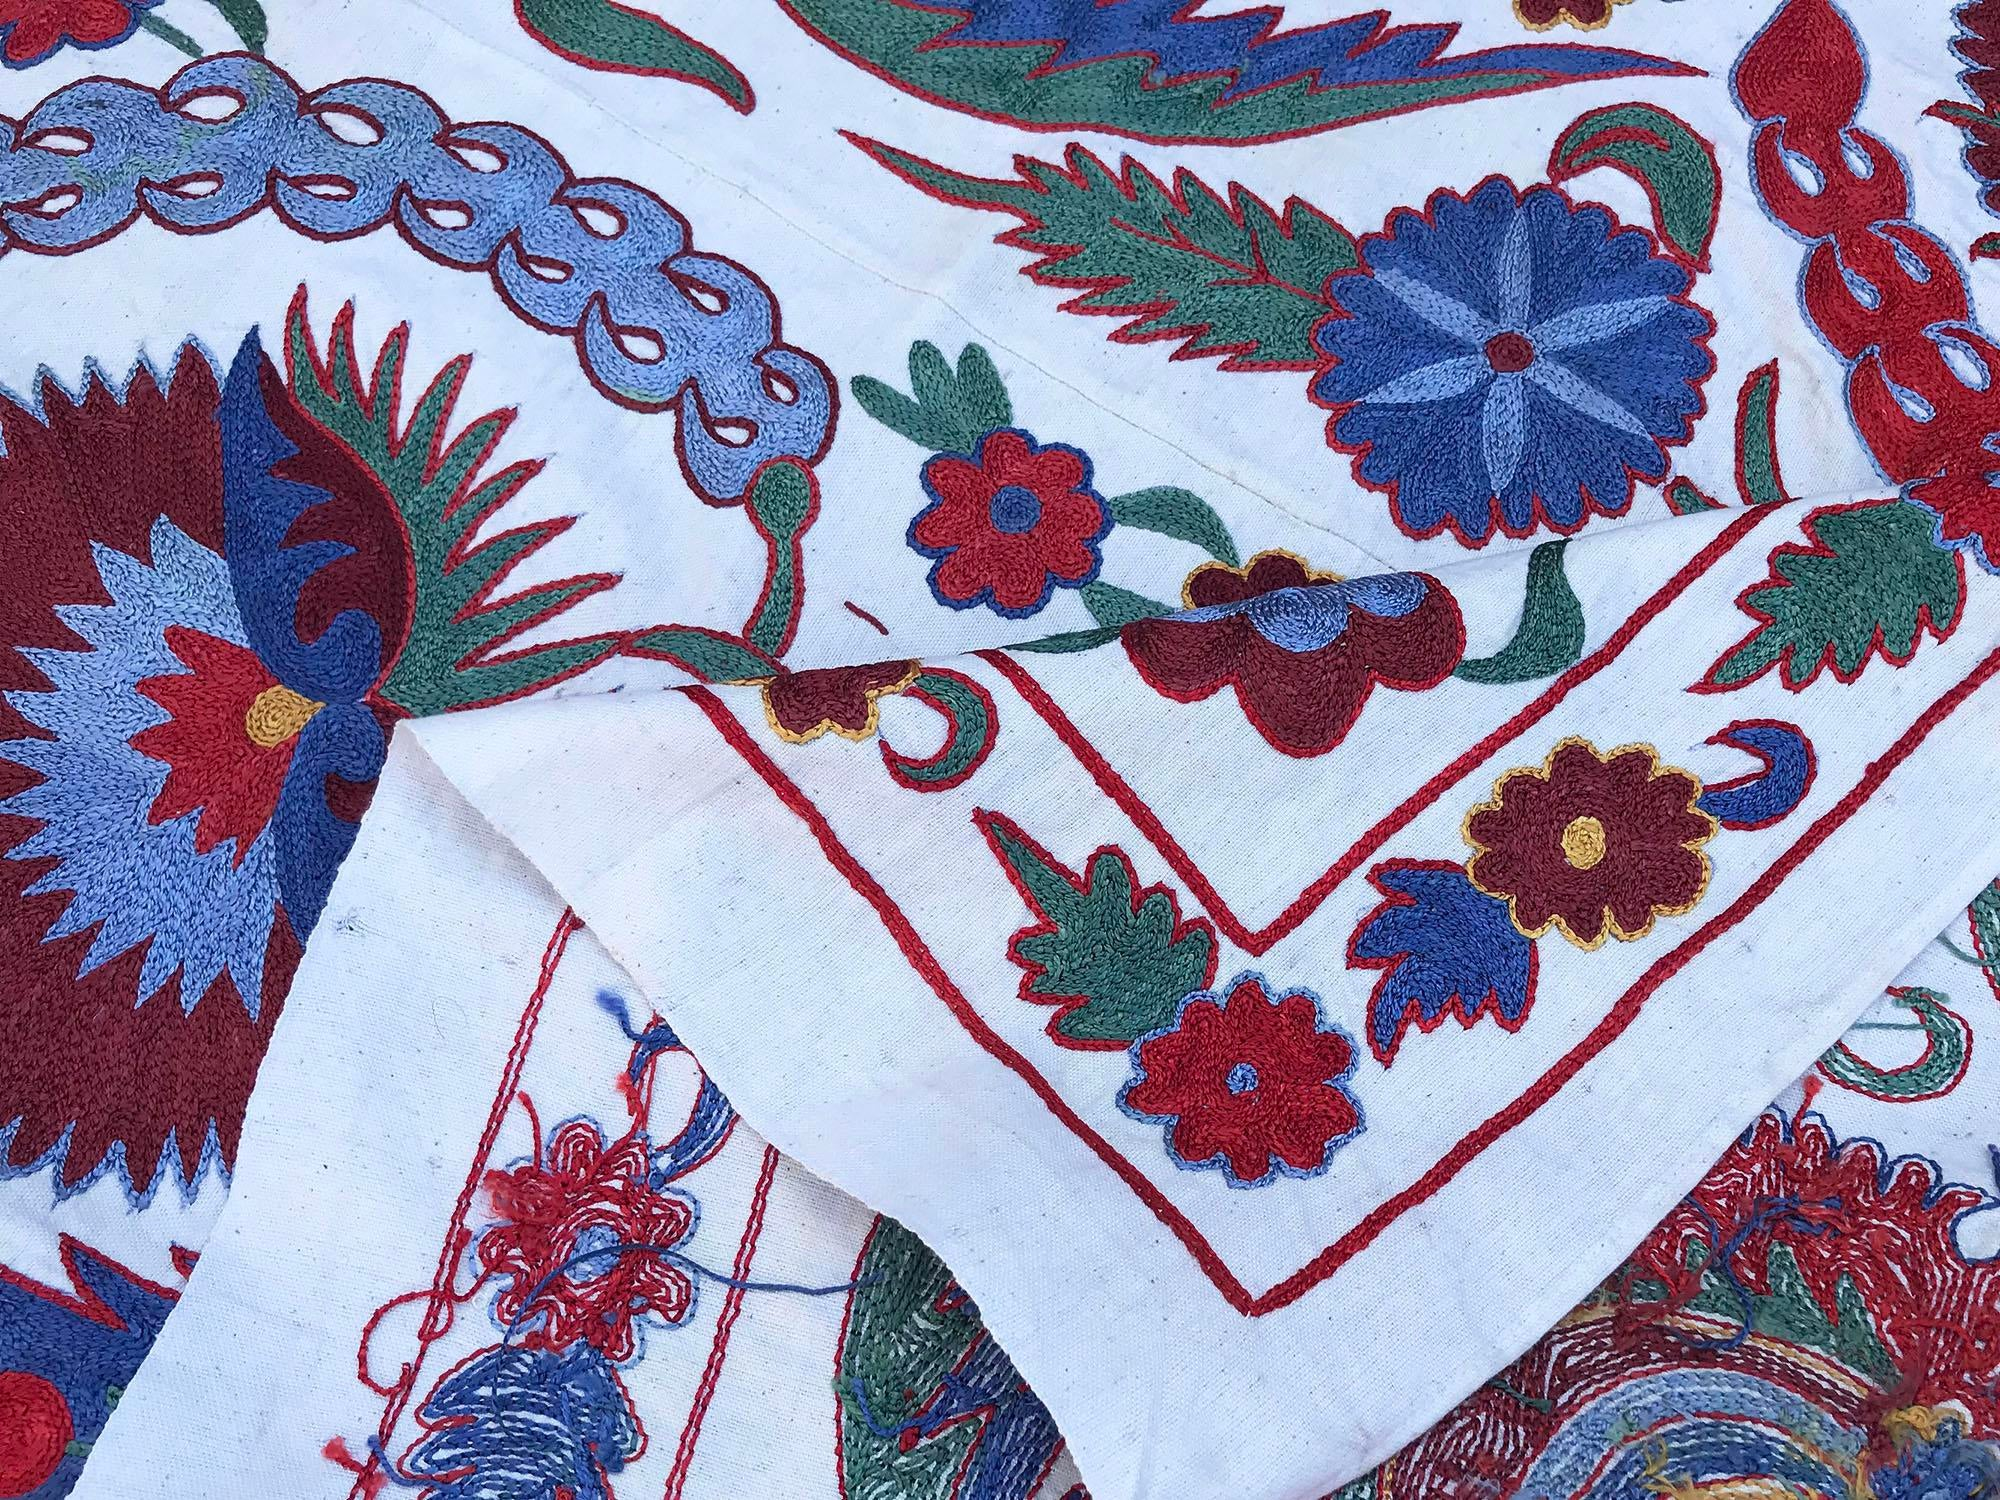 Suzani Wall Hanging Handmade Tablecloth with Full Condition Handmade Crochet Table Cover Bedspread Clove Design Fabric Turkish Bedding